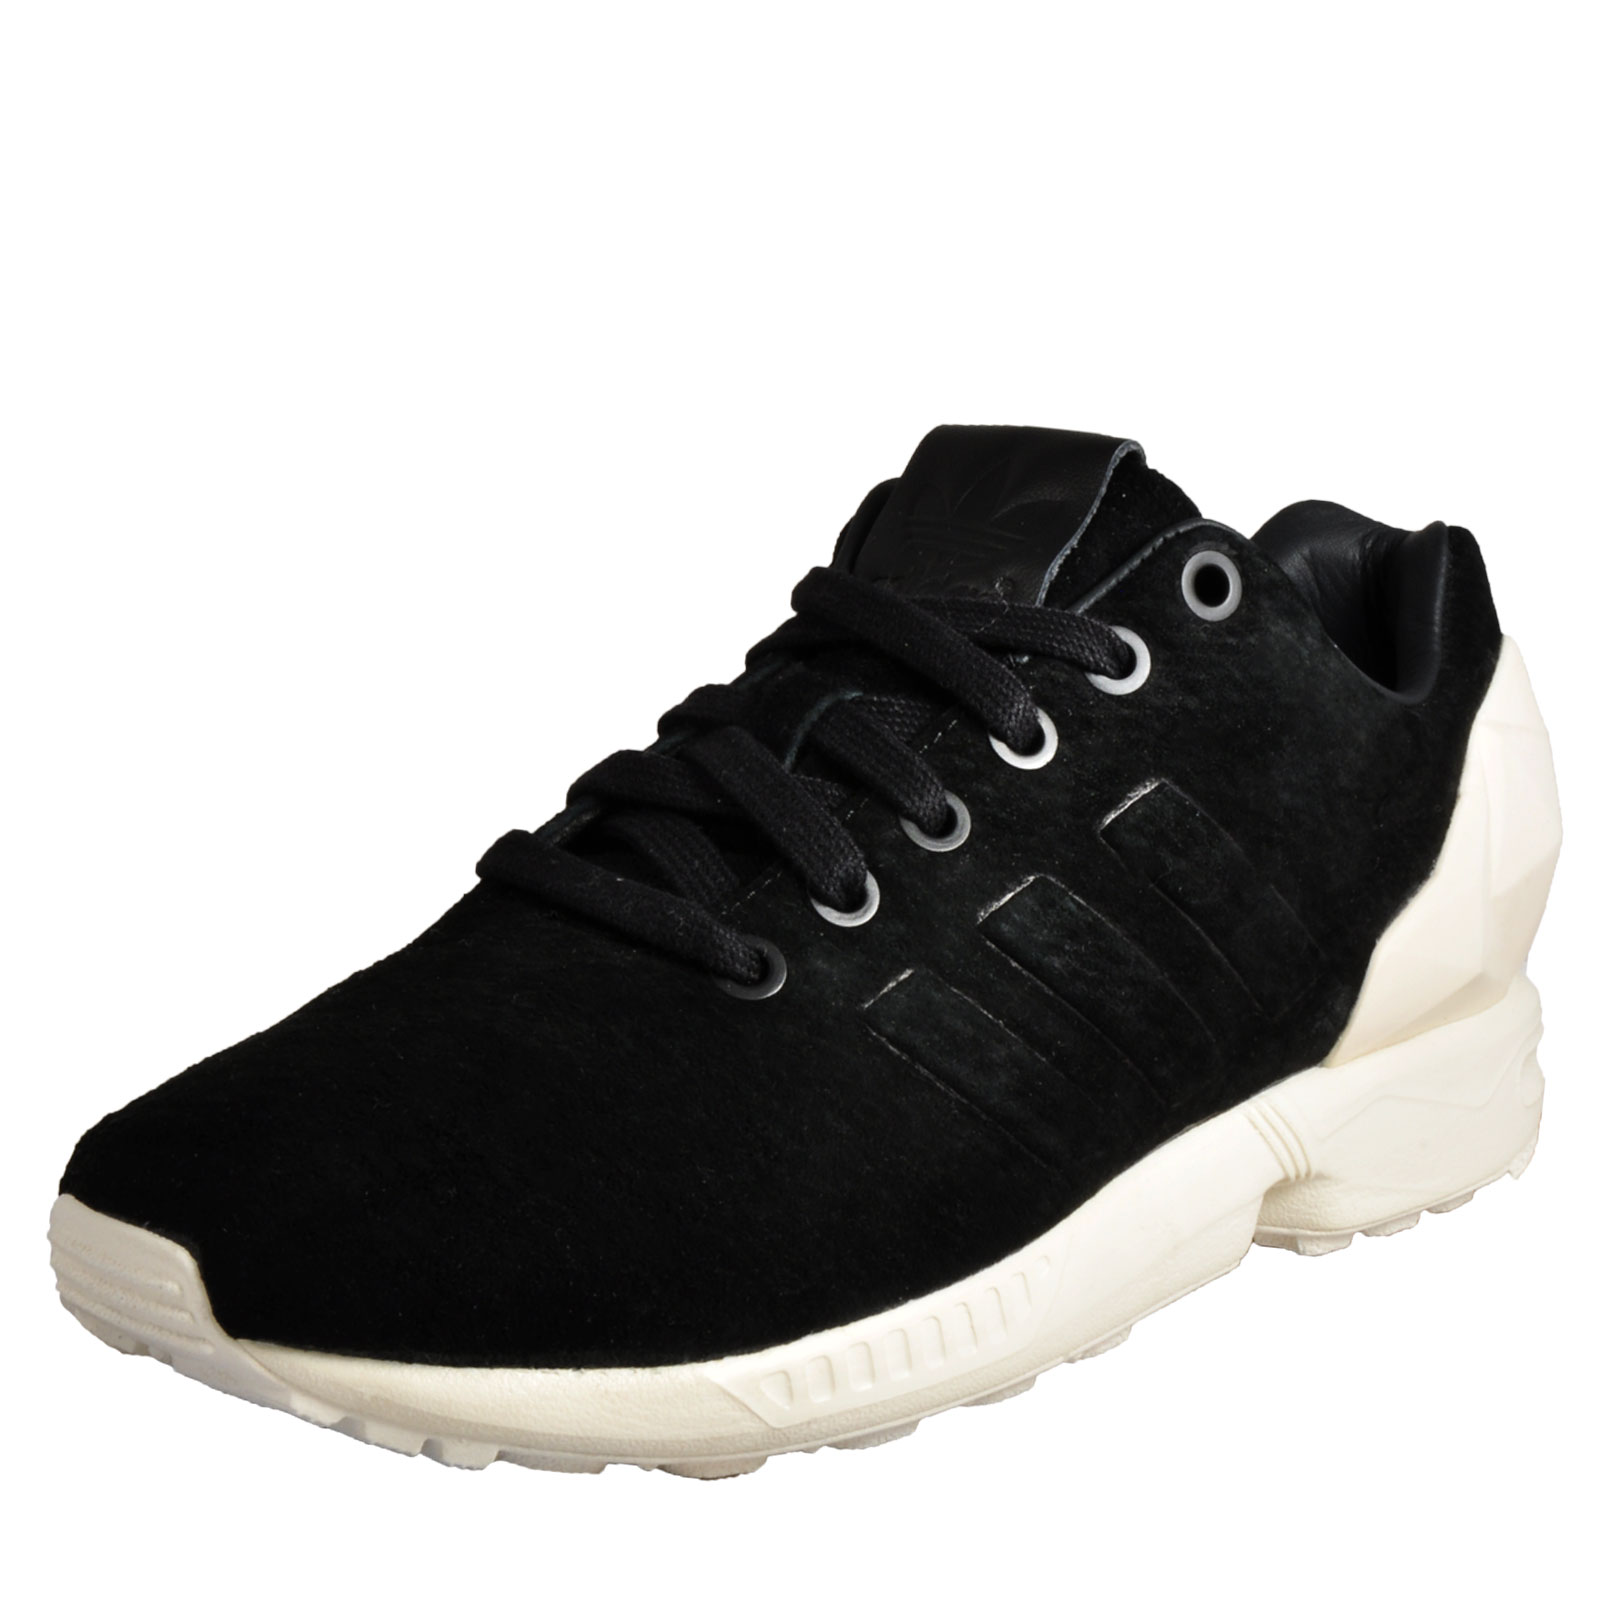 bec5bf664 Details about Adidas Originals ZX Flux Jewel Women s Classic Casual Leather  Retro Gym Trainers